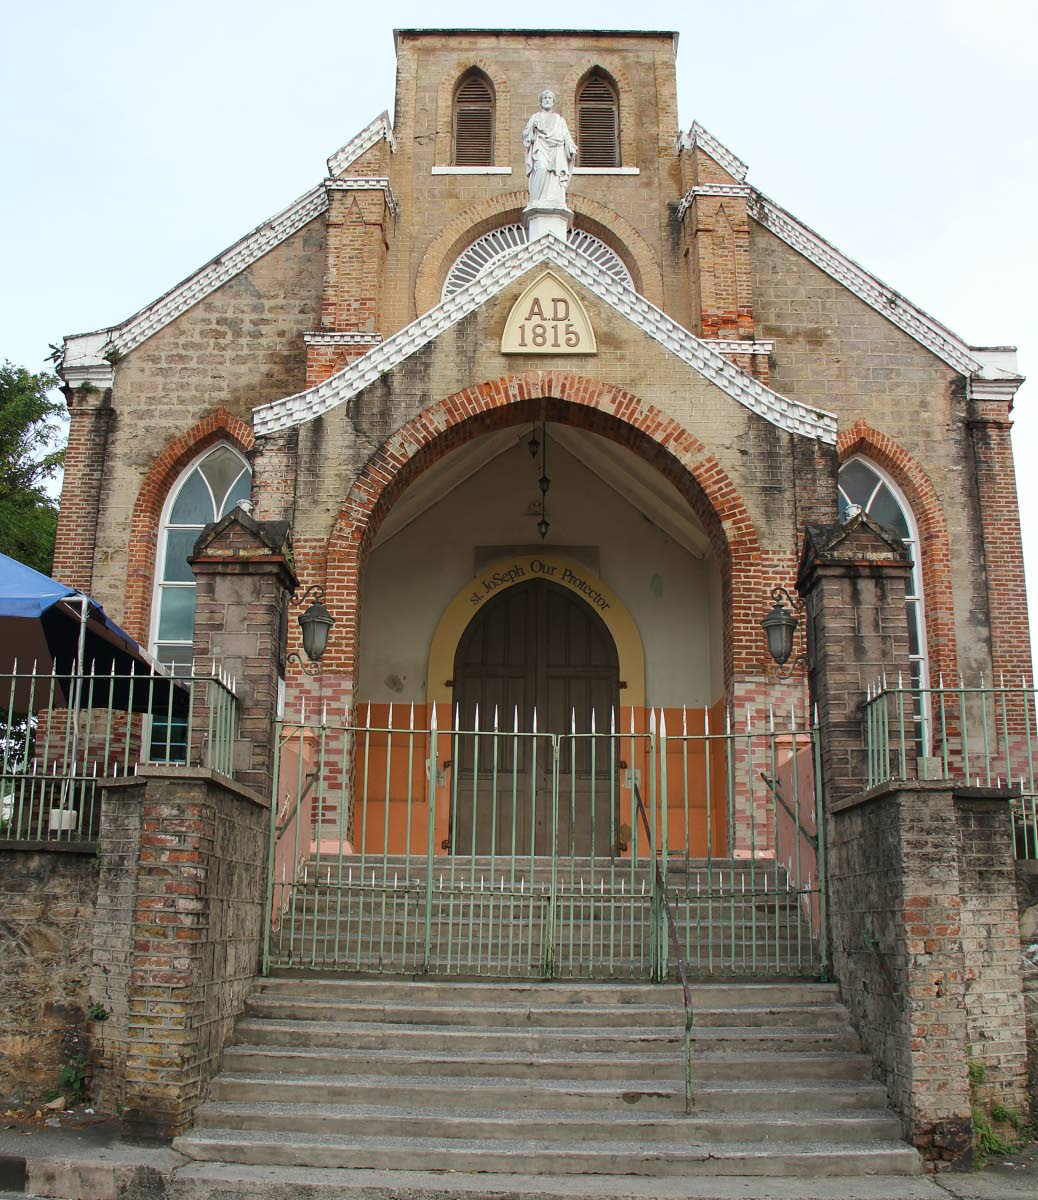 St Joseph RC Church, built in 1815, is a stately red brick structure overlooking Maracas Royal Road.  PHOTOS BY ROGER JACOB